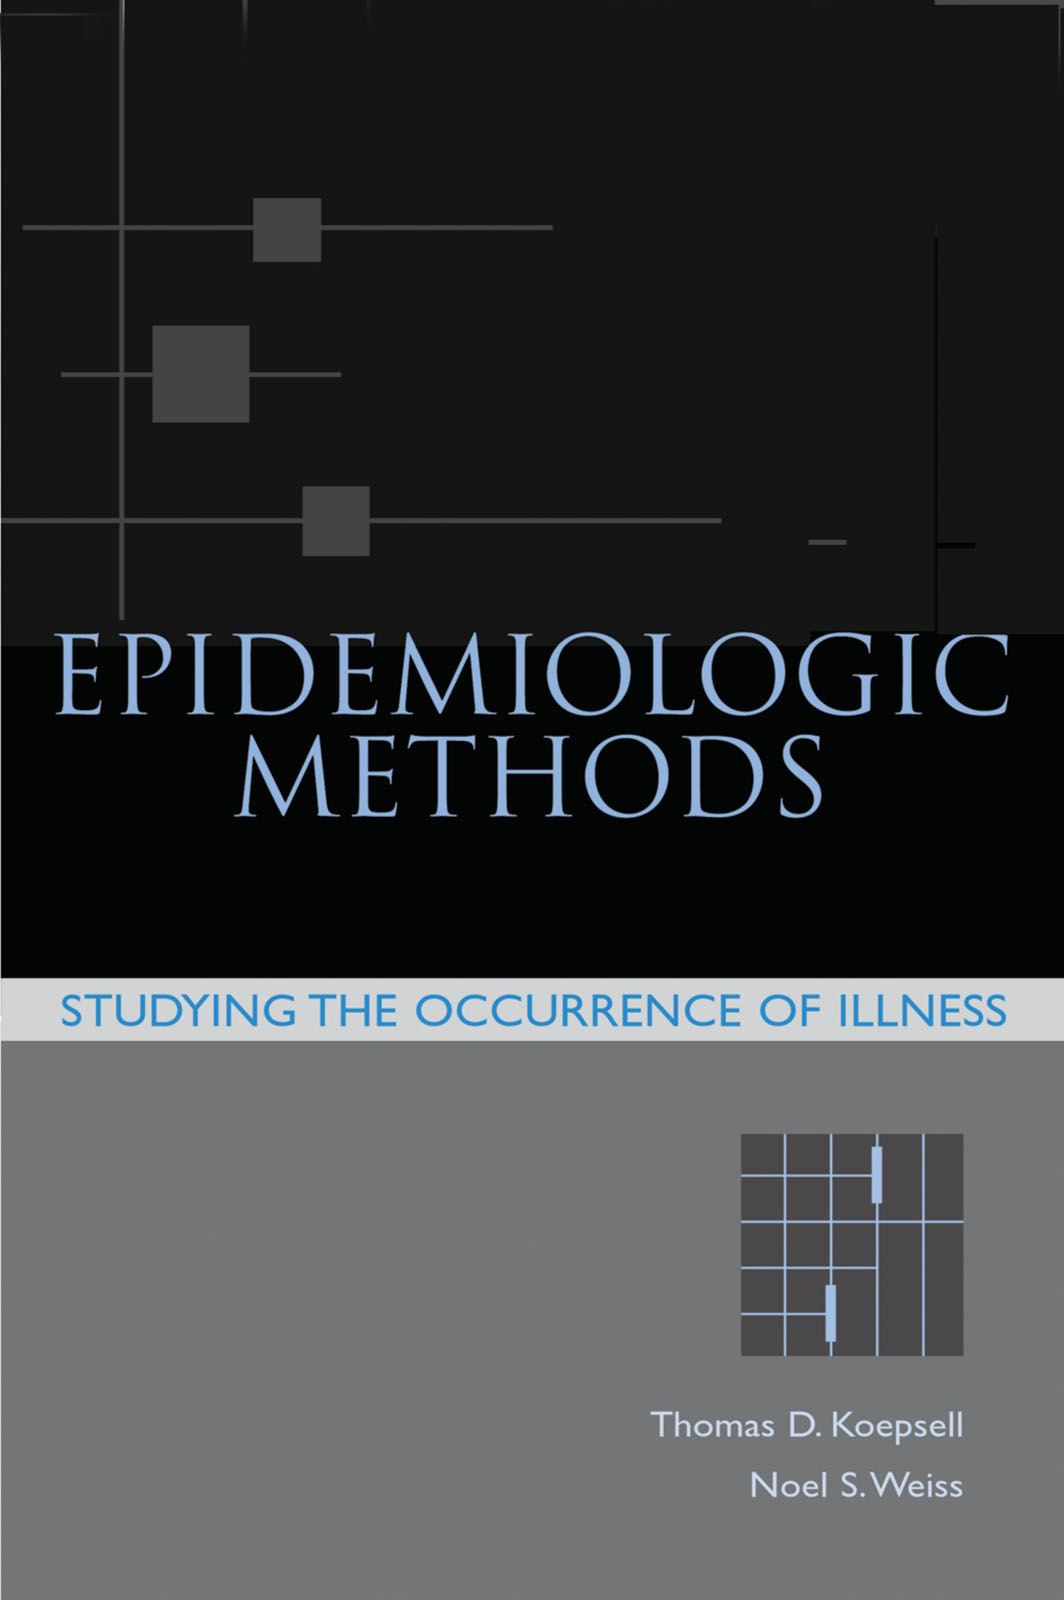 Epidemiologic Methods : Studying the Occurrence of Illness By: Thomas D. Koepsell;Noel S. Weiss